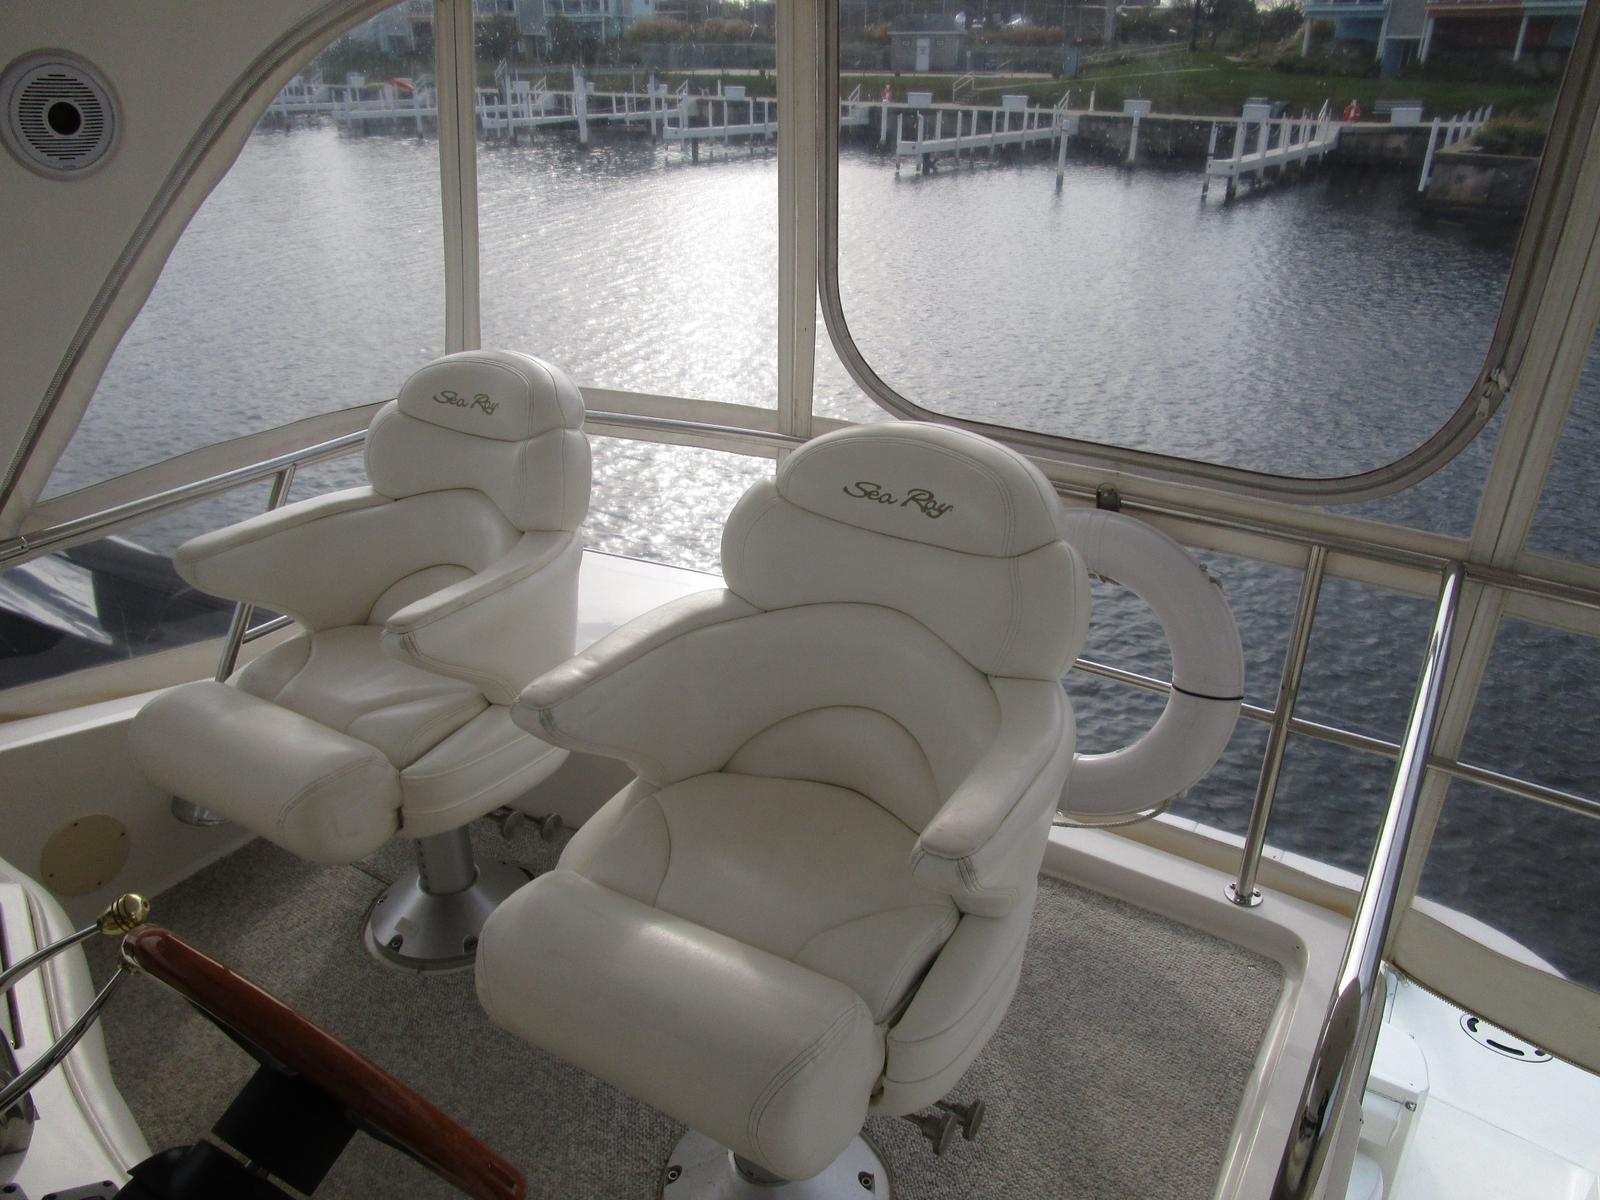 2003 Sea Ray boat for sale, model of the boat is 480 Sedan Bridge & Image # 6 of 15